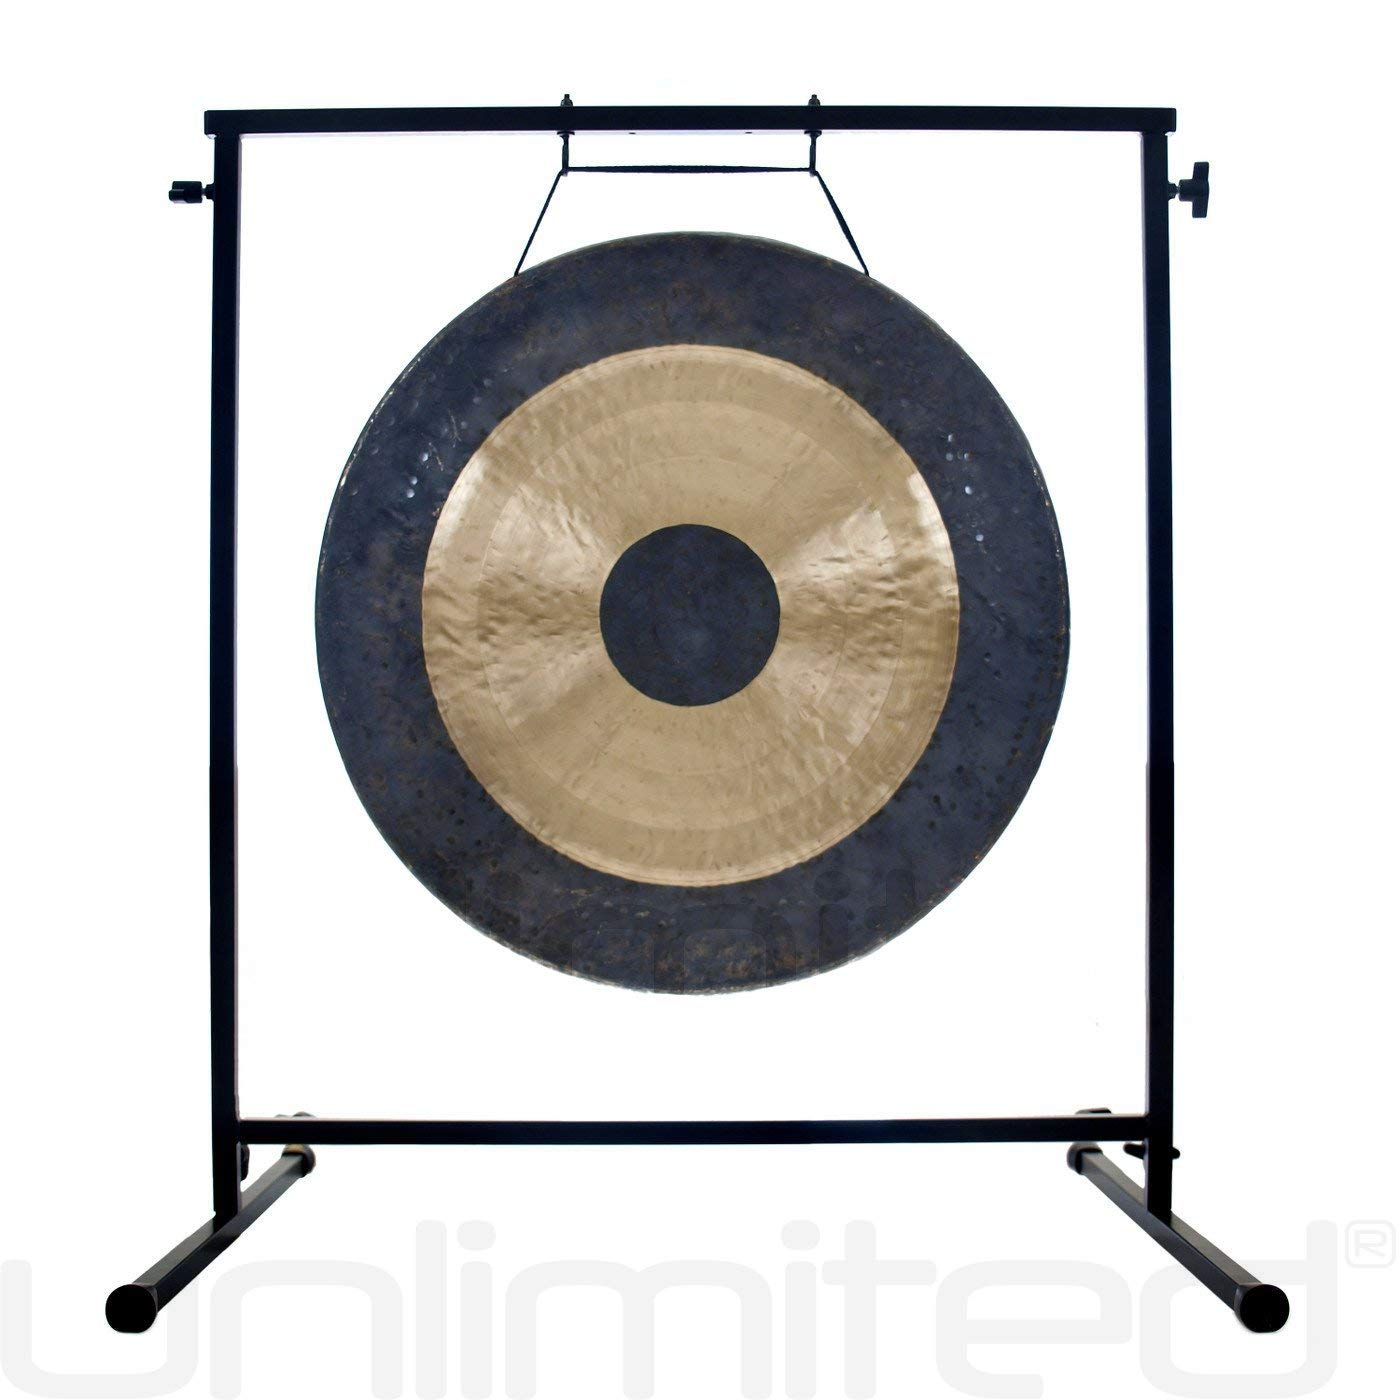 20'' to 26'' Gongs on the Fruity Buddha Gong Stand